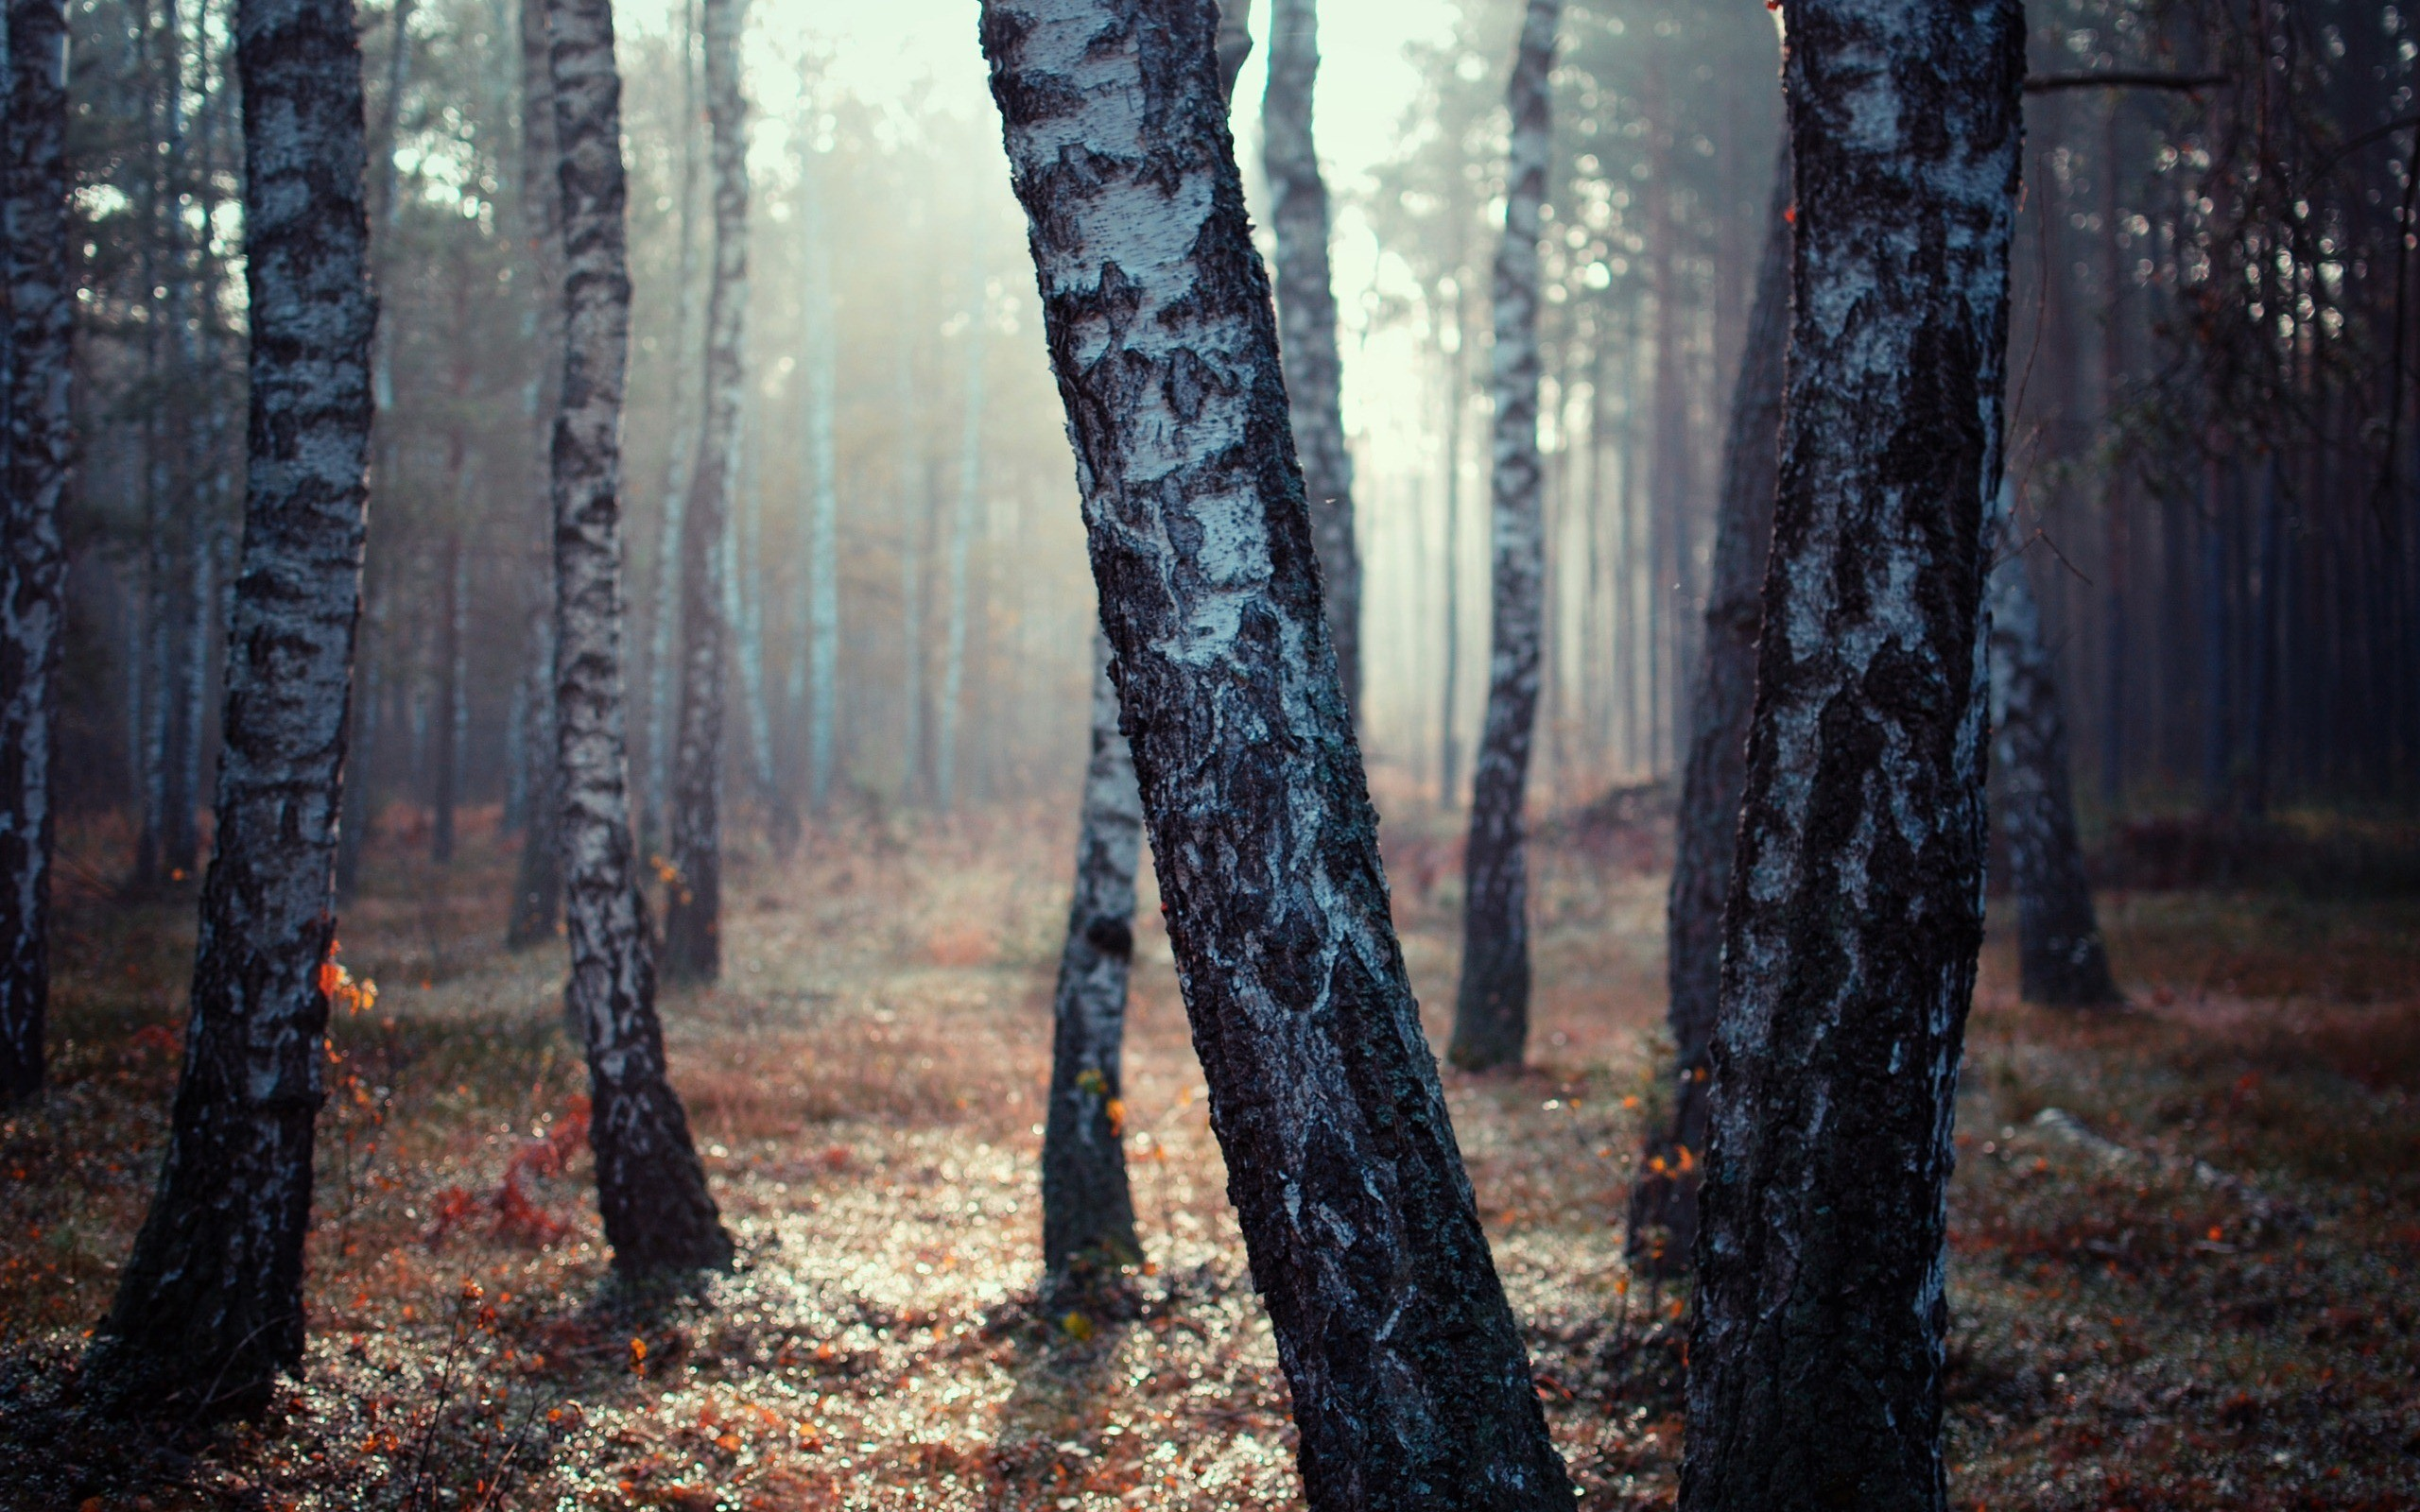 Res: 2560x1600, Birch Tree Forest | 2560 x 1600 | Download | Close